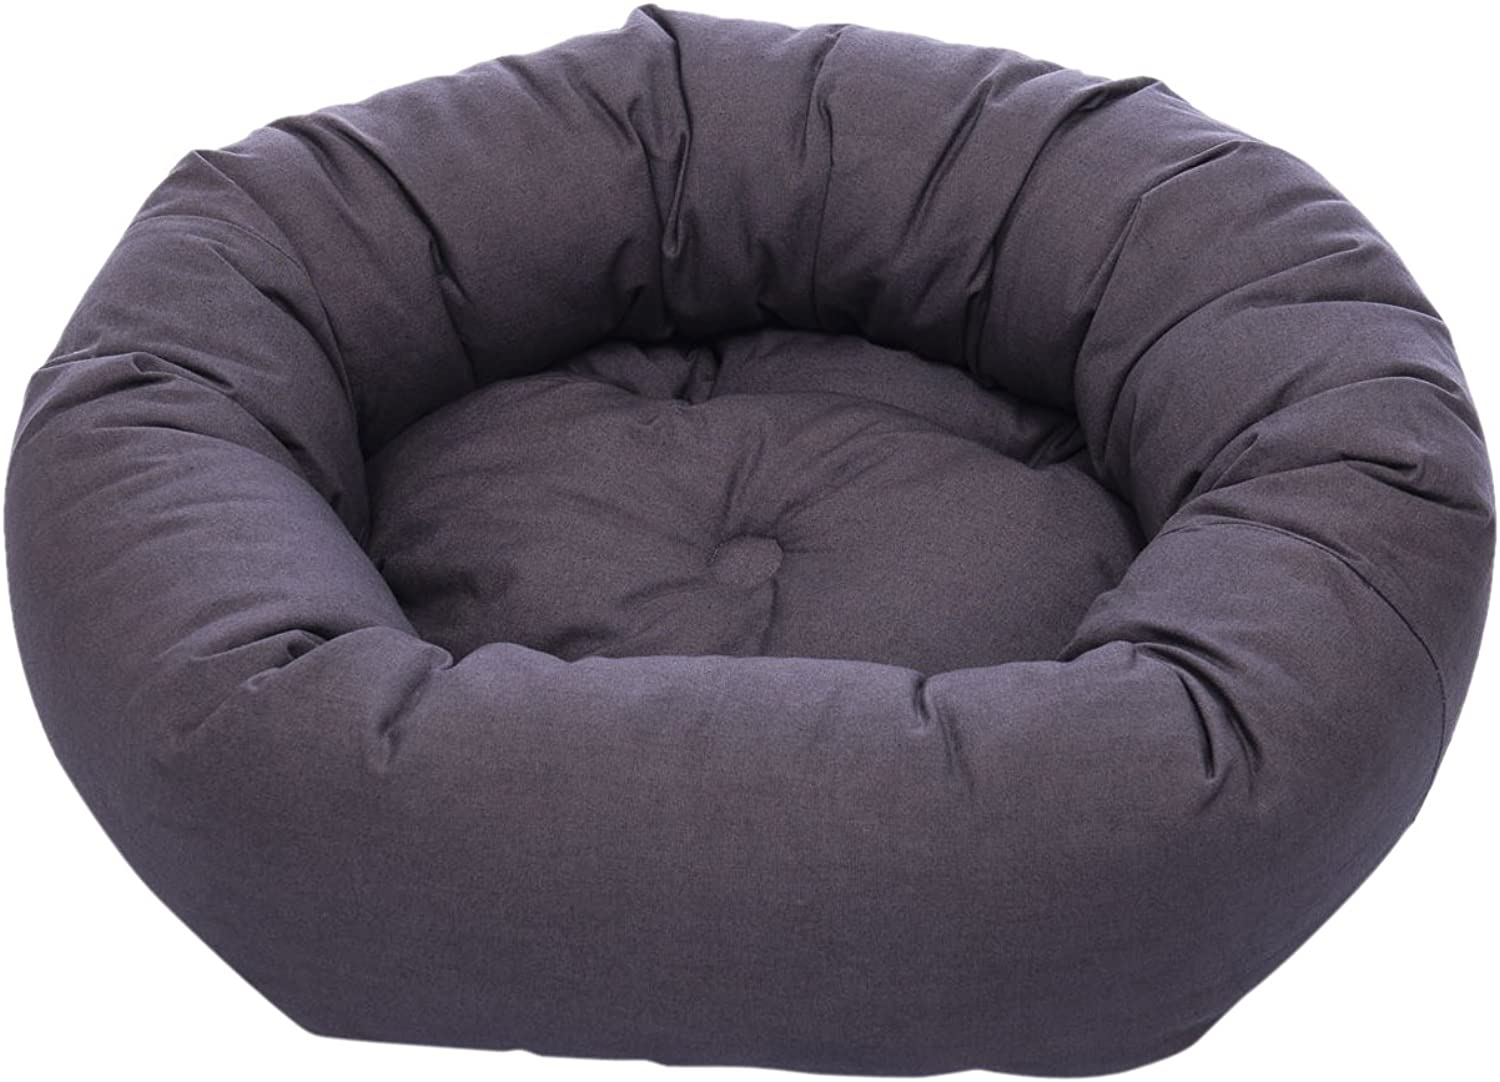 Dog Gone Smart Donut Bed Pebble Grey 69cm